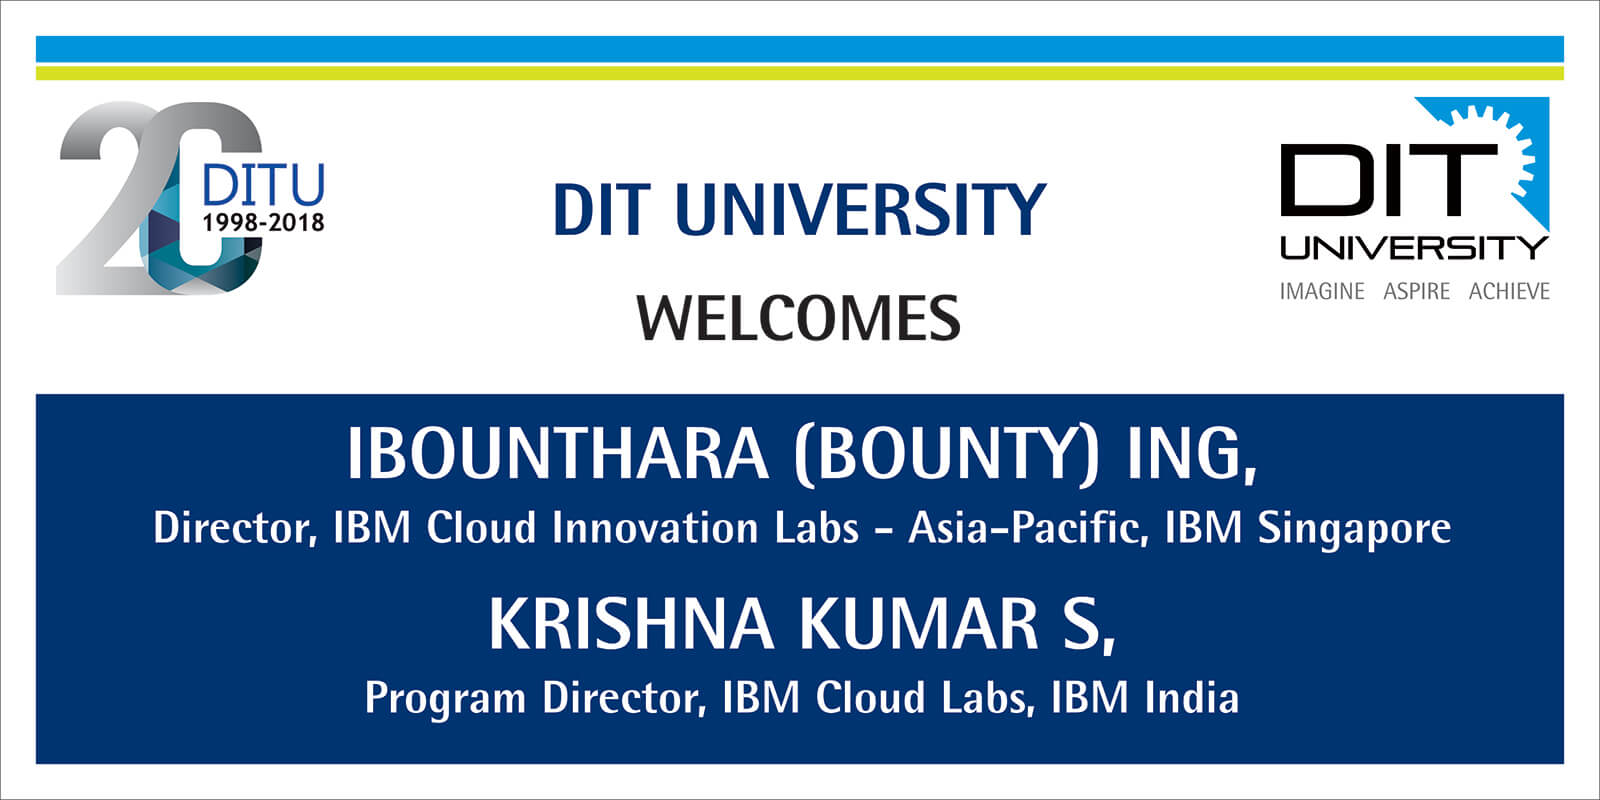 DIT University welcomes delegates from IBM